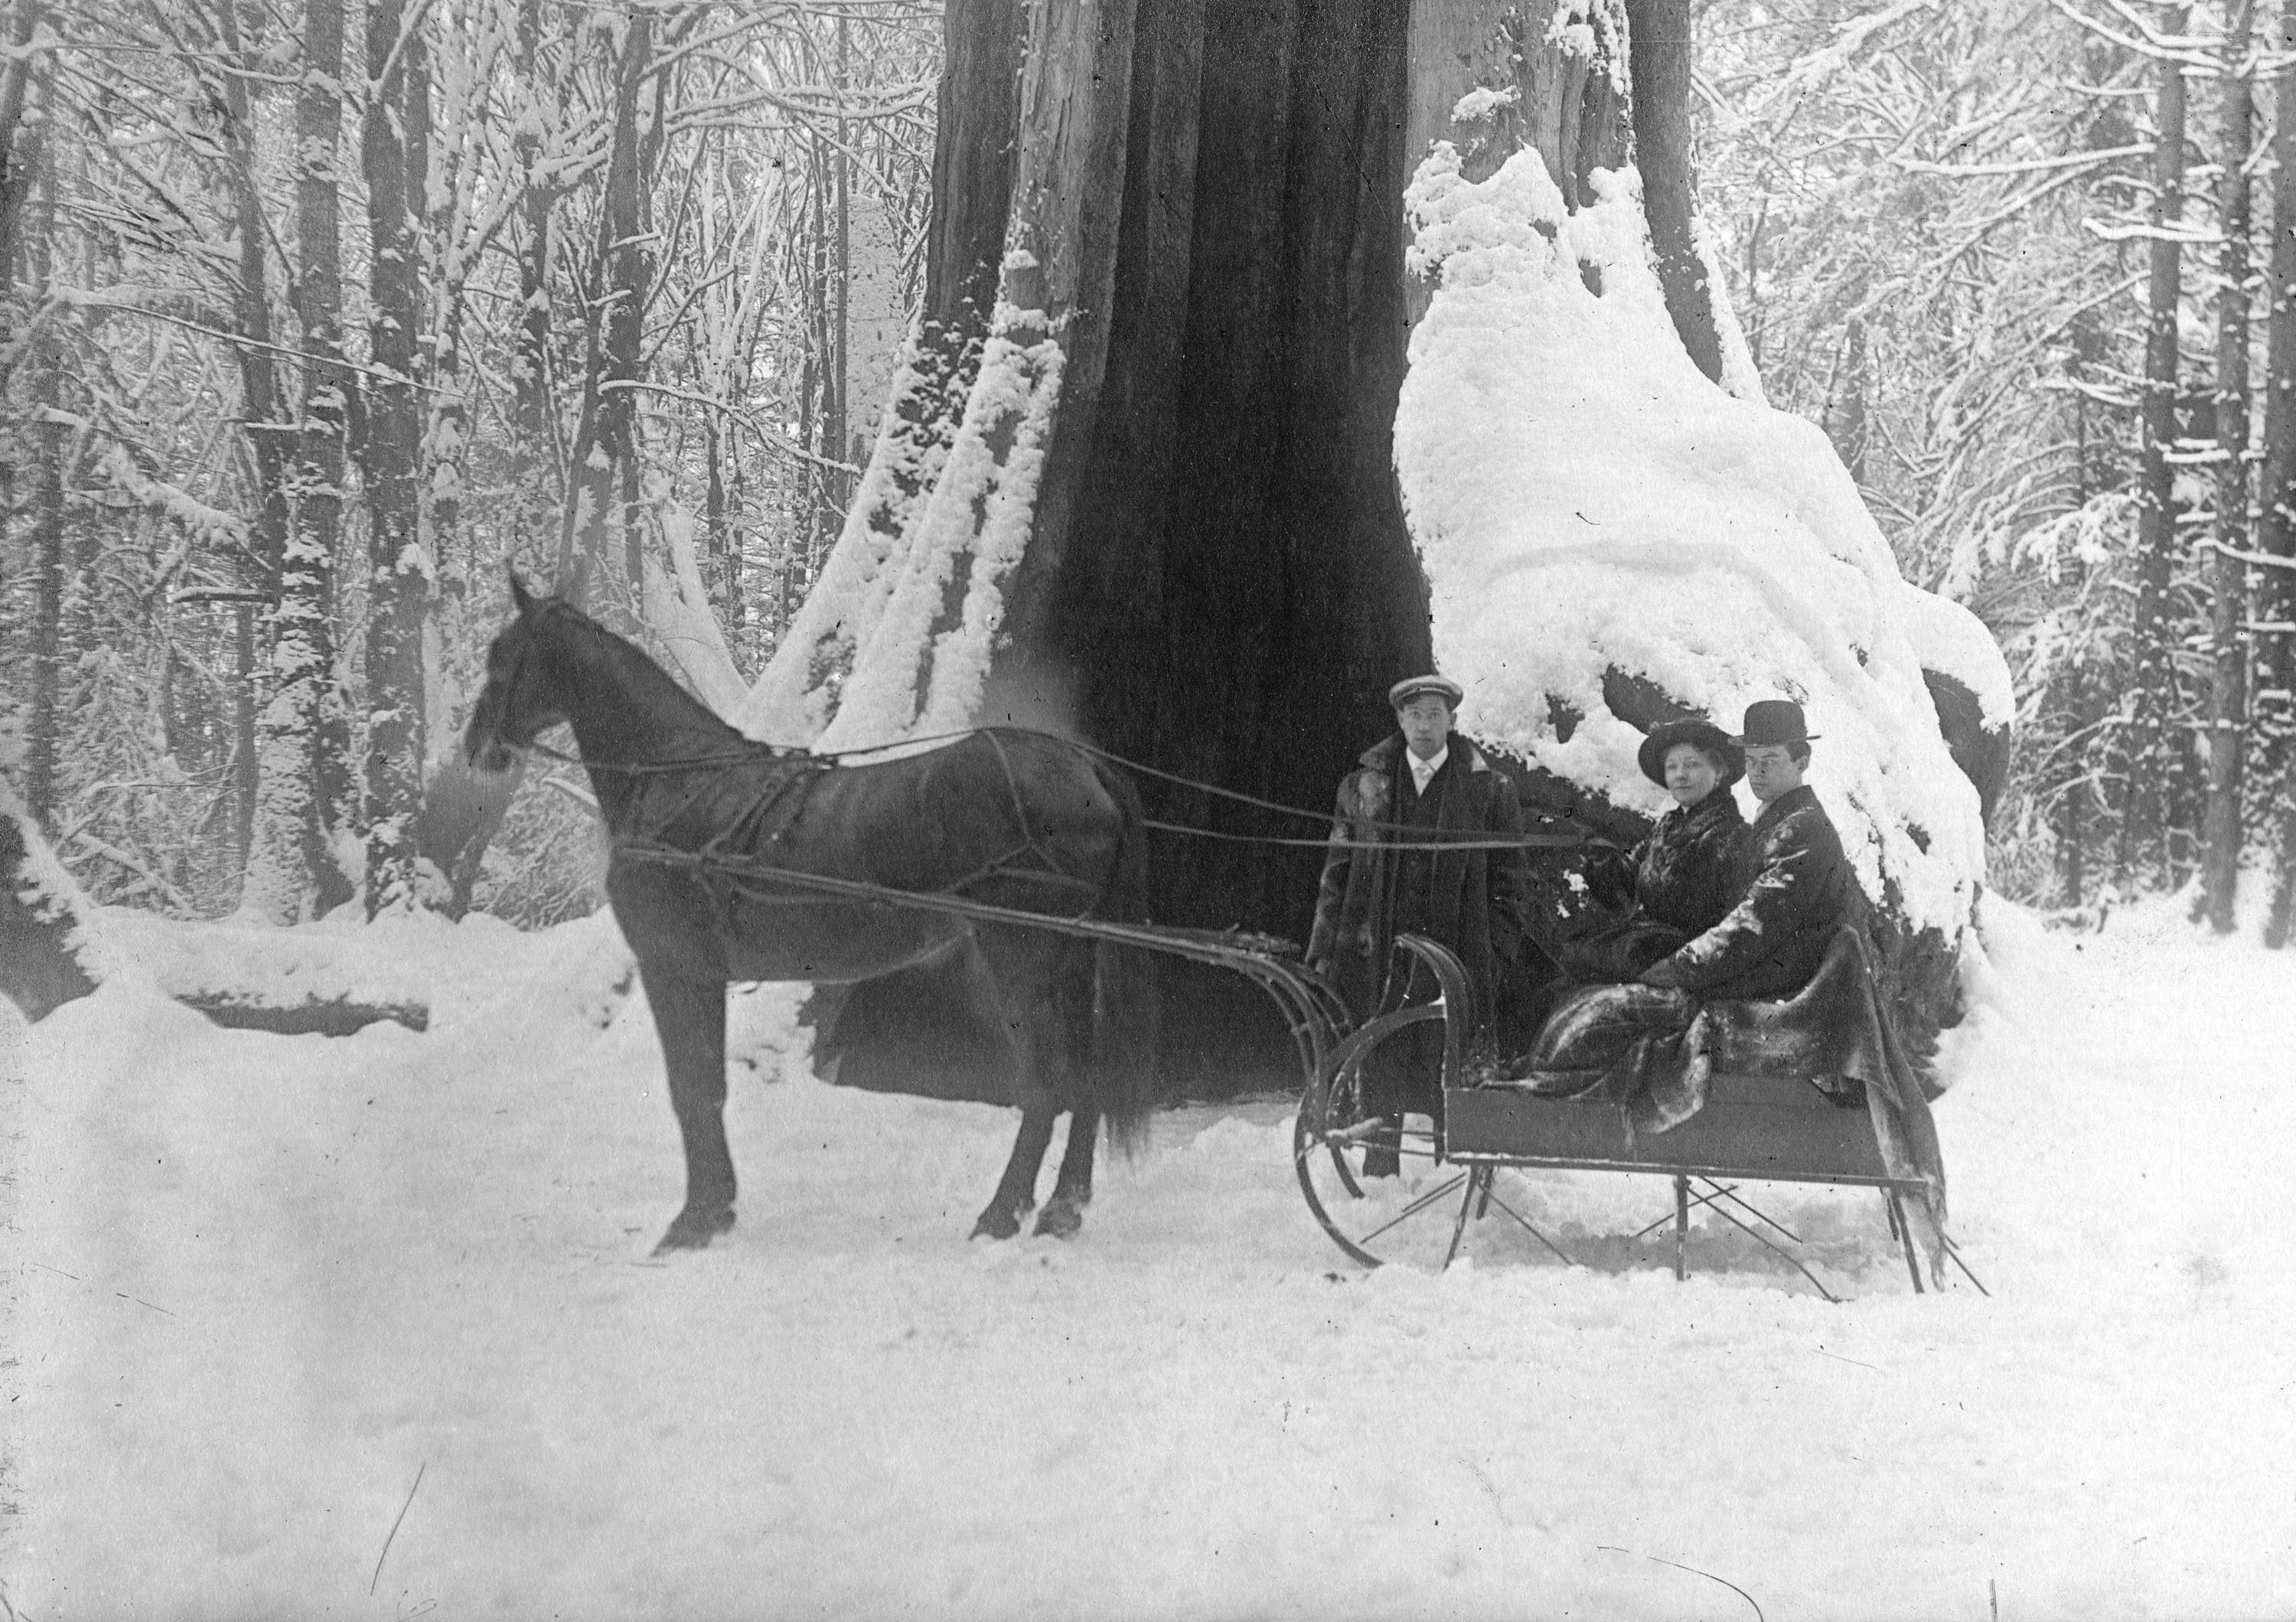 Horse and sleigh infront of hollow tree